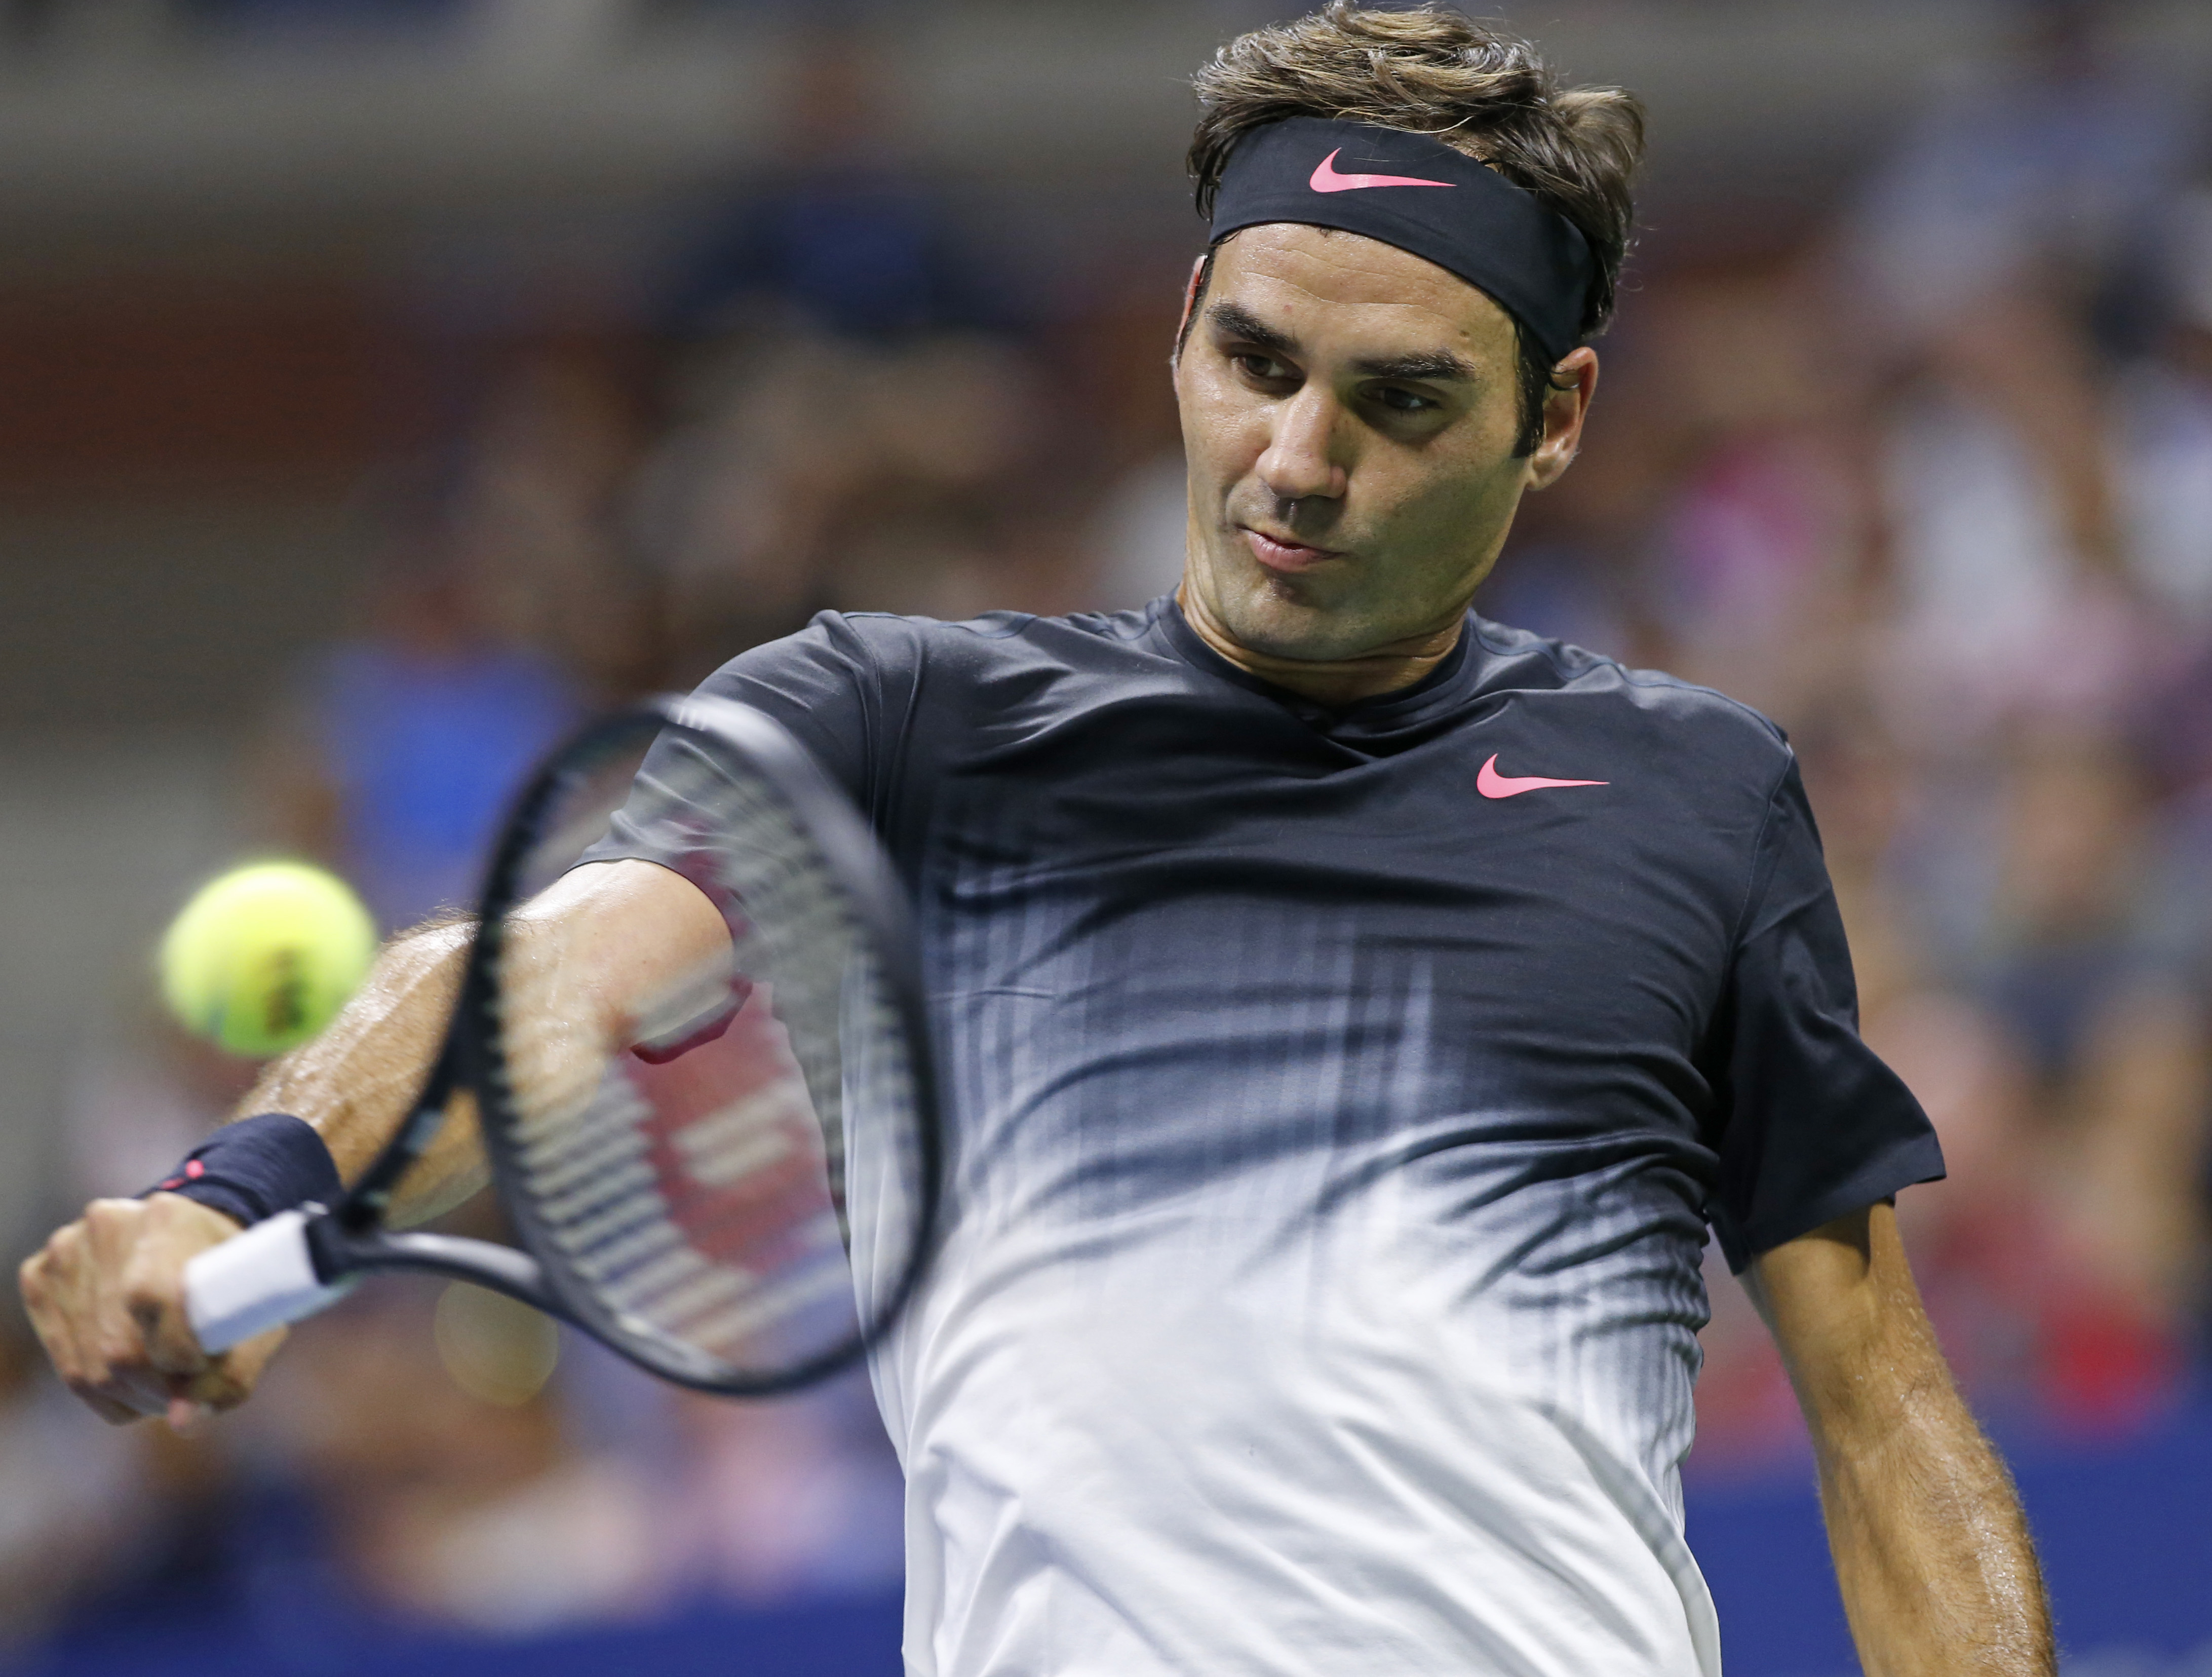 Roger Federer, of Switzerland, returns in a fourth-round match against Philipp Kohlschreiber, of Germany, at the U.S. Open tennis tournament in New York, Monday, Sept. 4, 2017. (AP Photo/Kathy Willens)